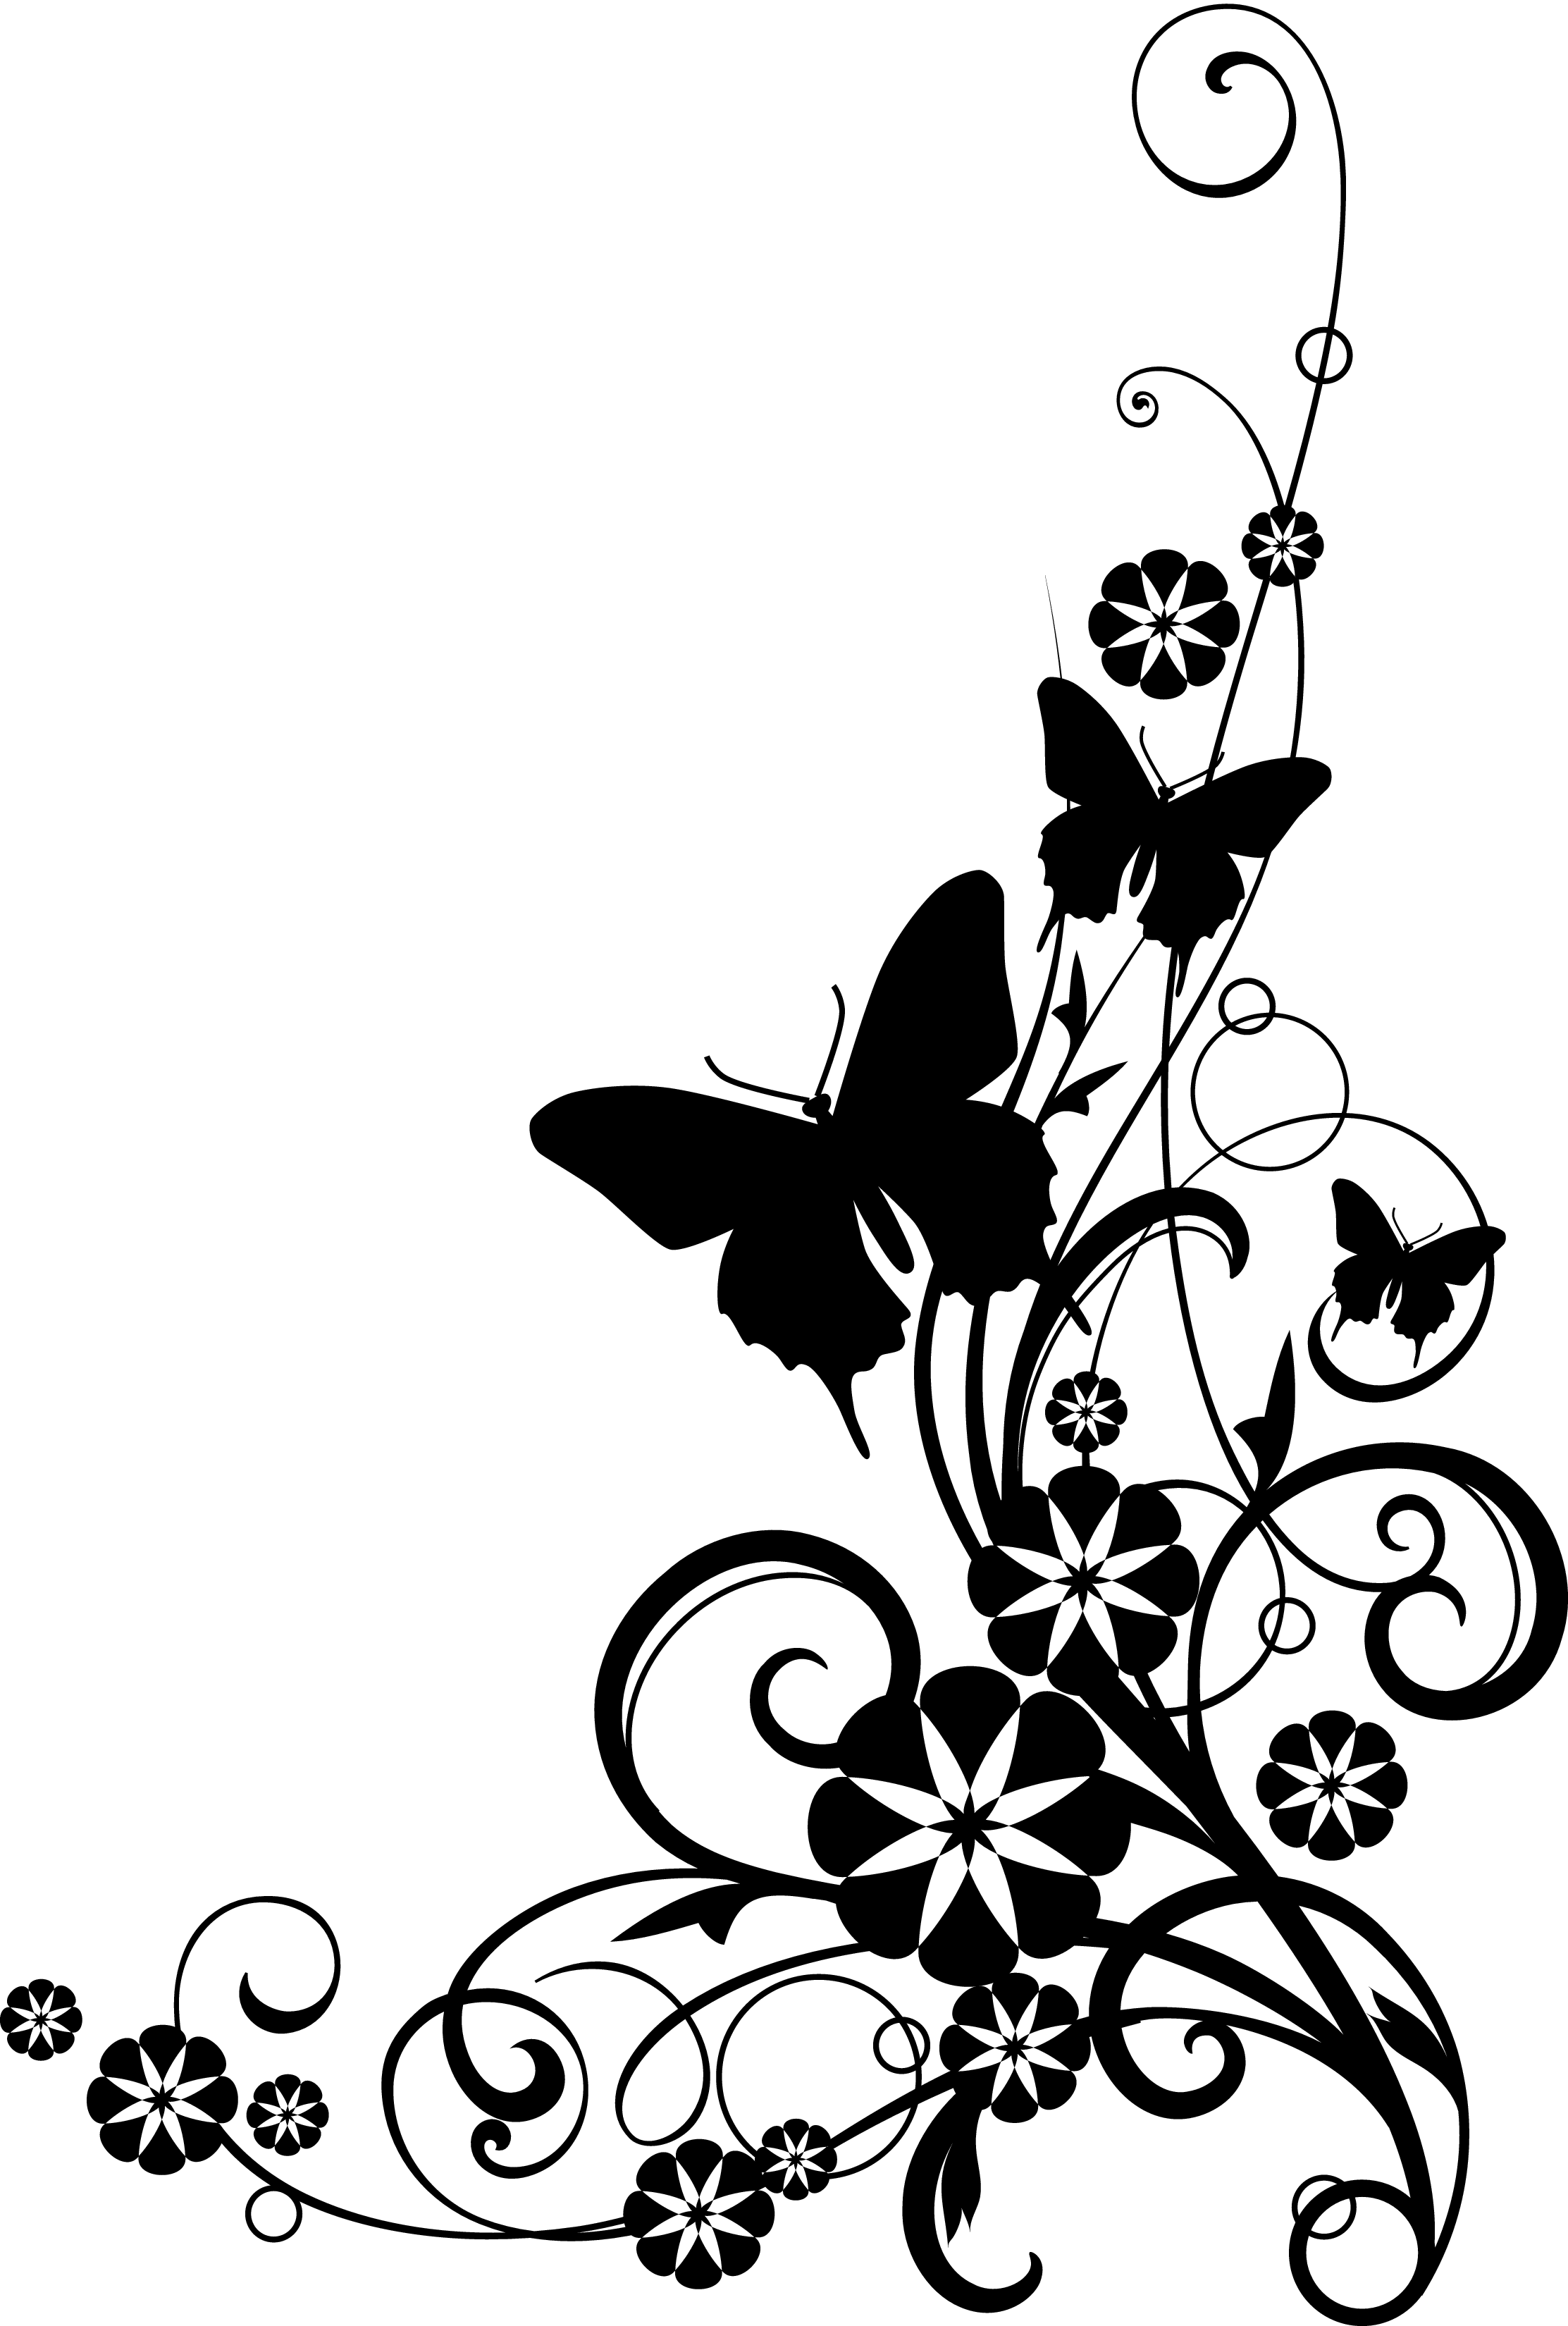 Pumpkin vine black and white clipart black and white library Clipart garden site - ClipartFest black and white library